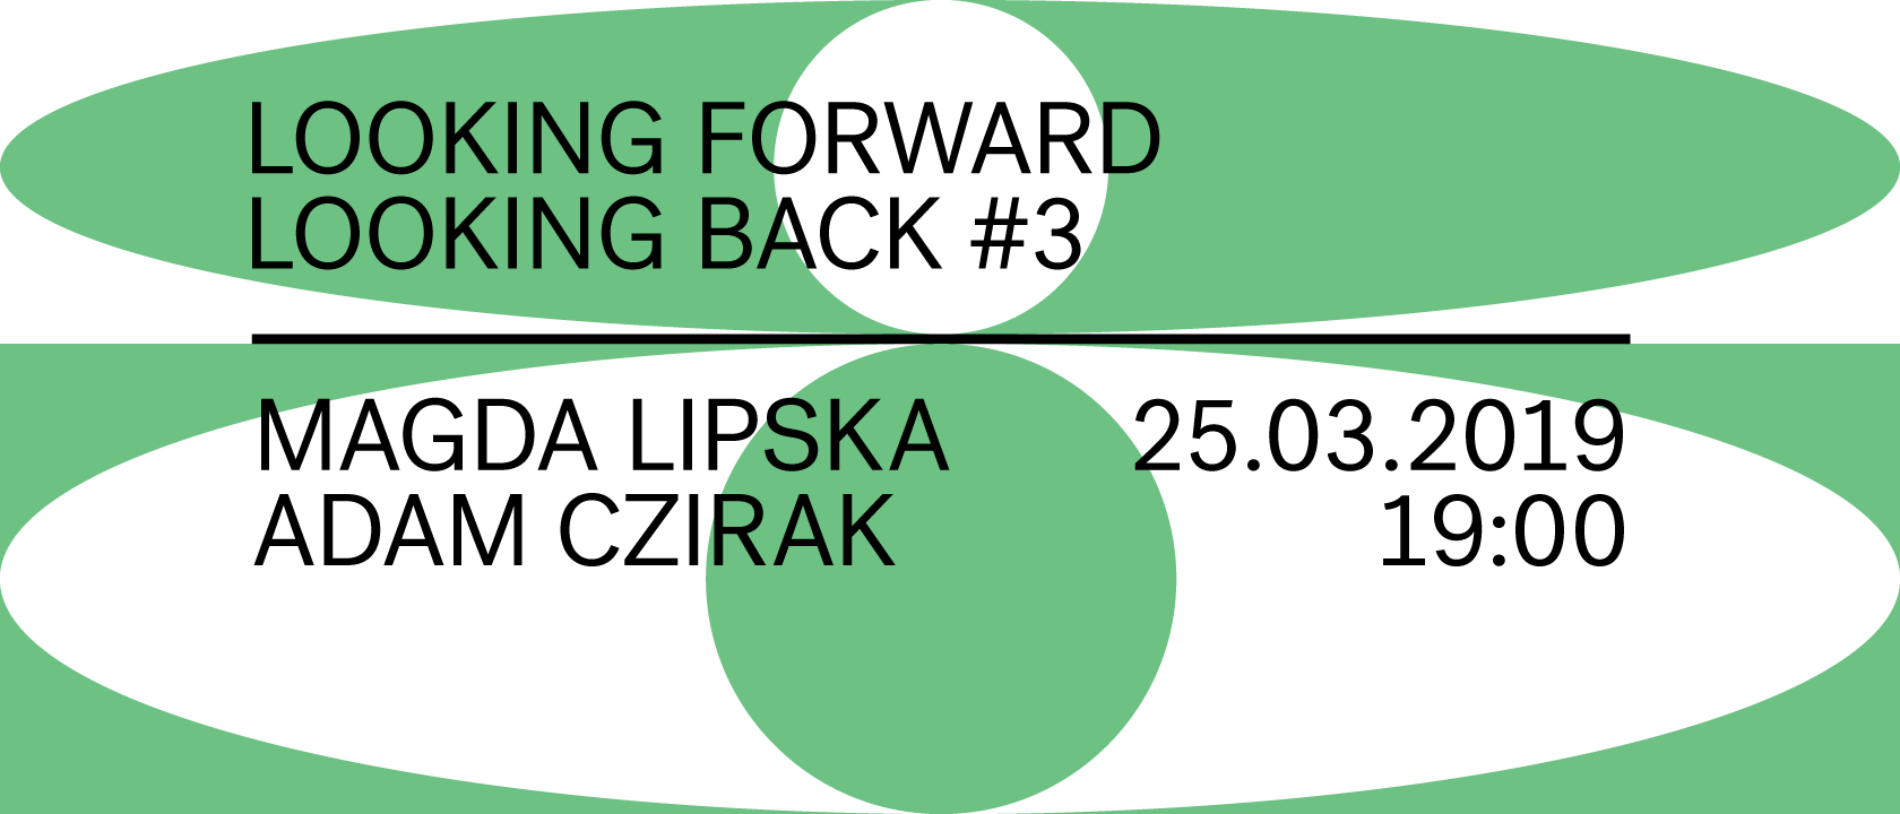 IP lectures: Magda Lipska and Adam Czirak / Looking Forward, Looking Back #3